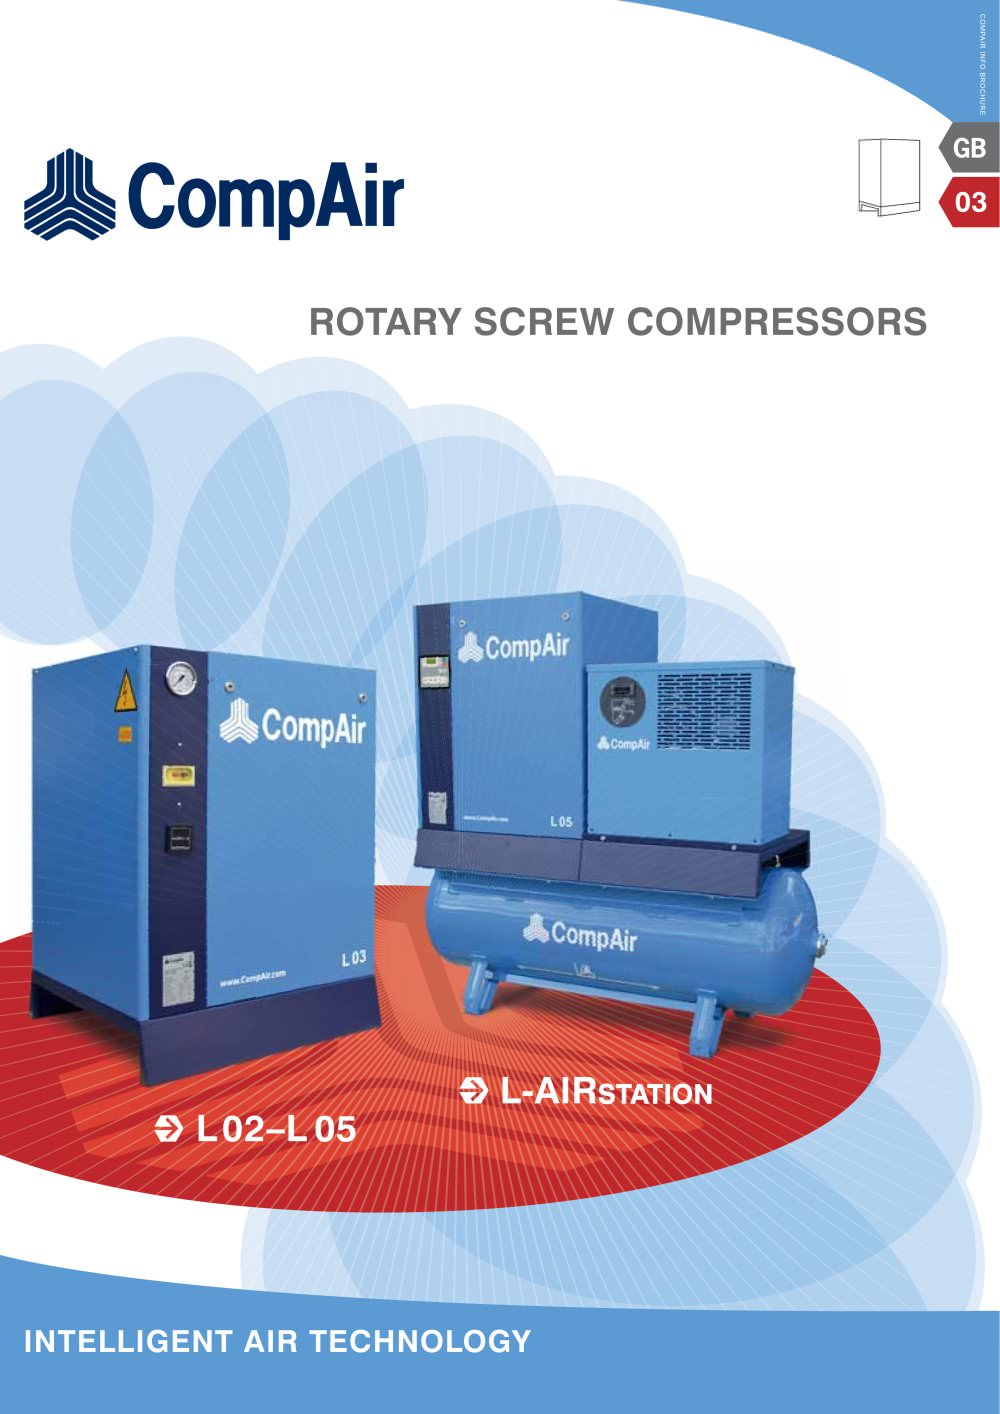 L02 - L05 compressors - 1 / 4 Pages